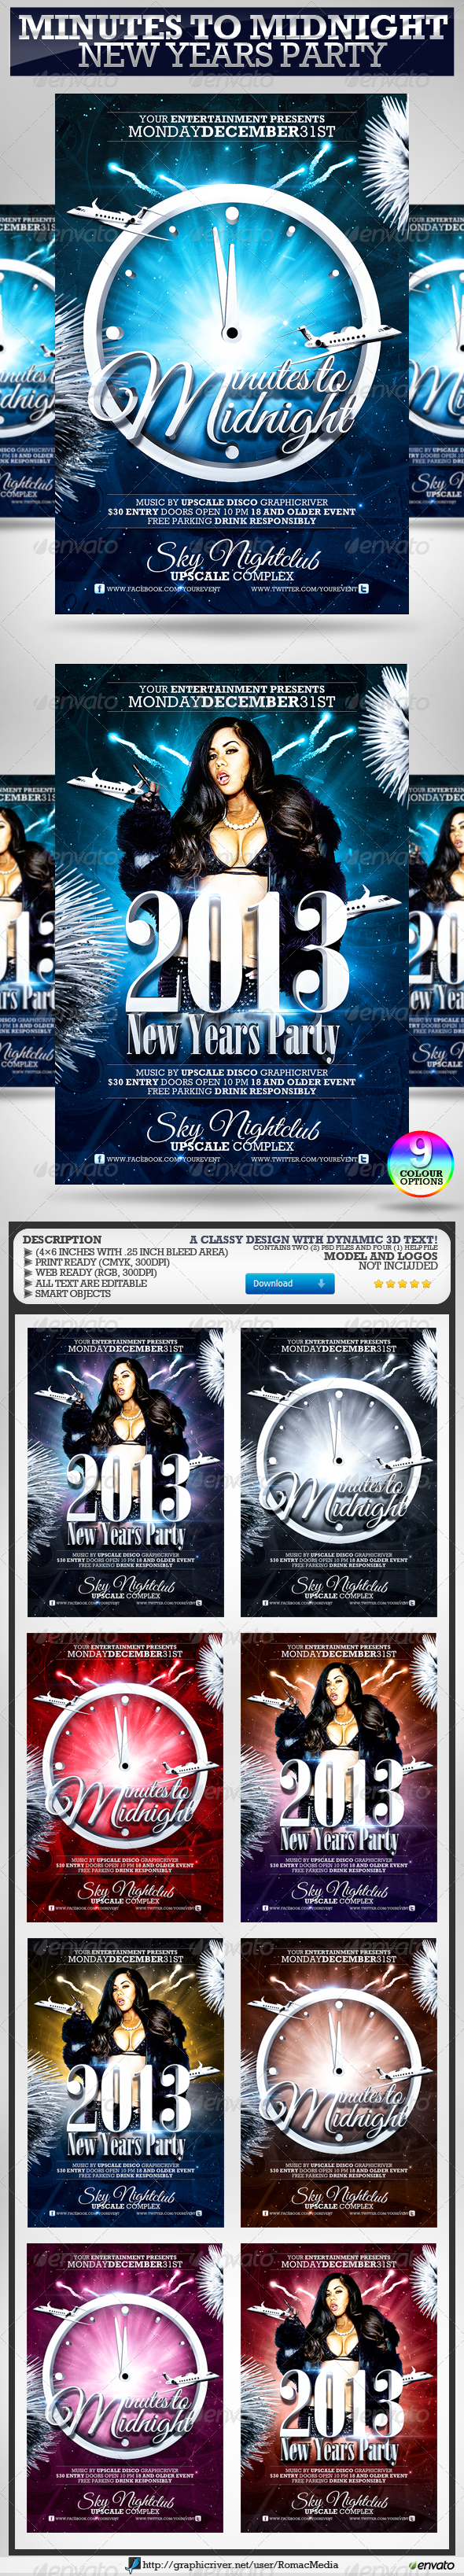 Minutes to Midnight New Years Party Flyer - Clubs & Parties Events